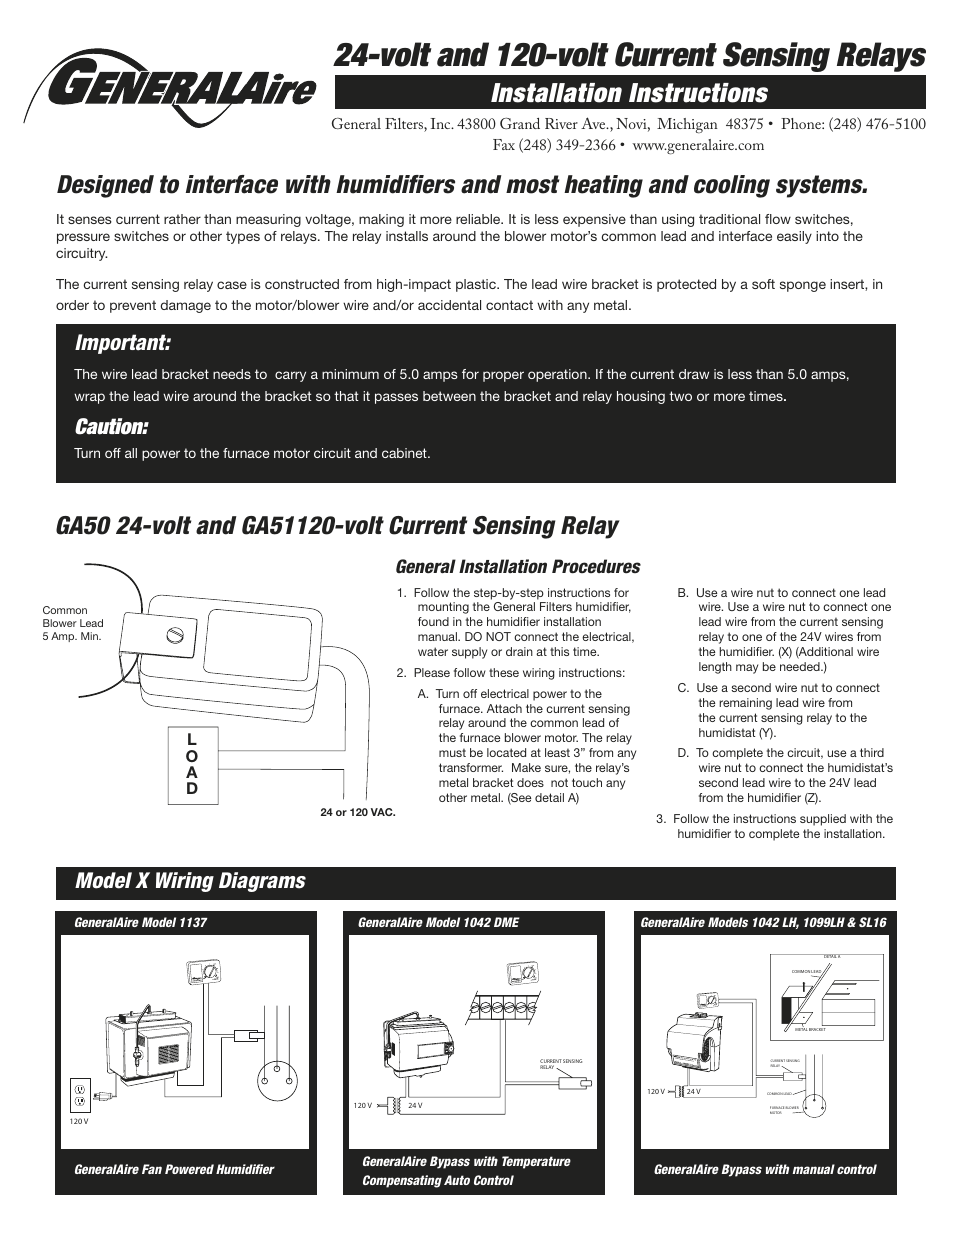 hight resolution of generalaire ga51 current sensing relay user manual 2 pages also for ga50 current sensing relay